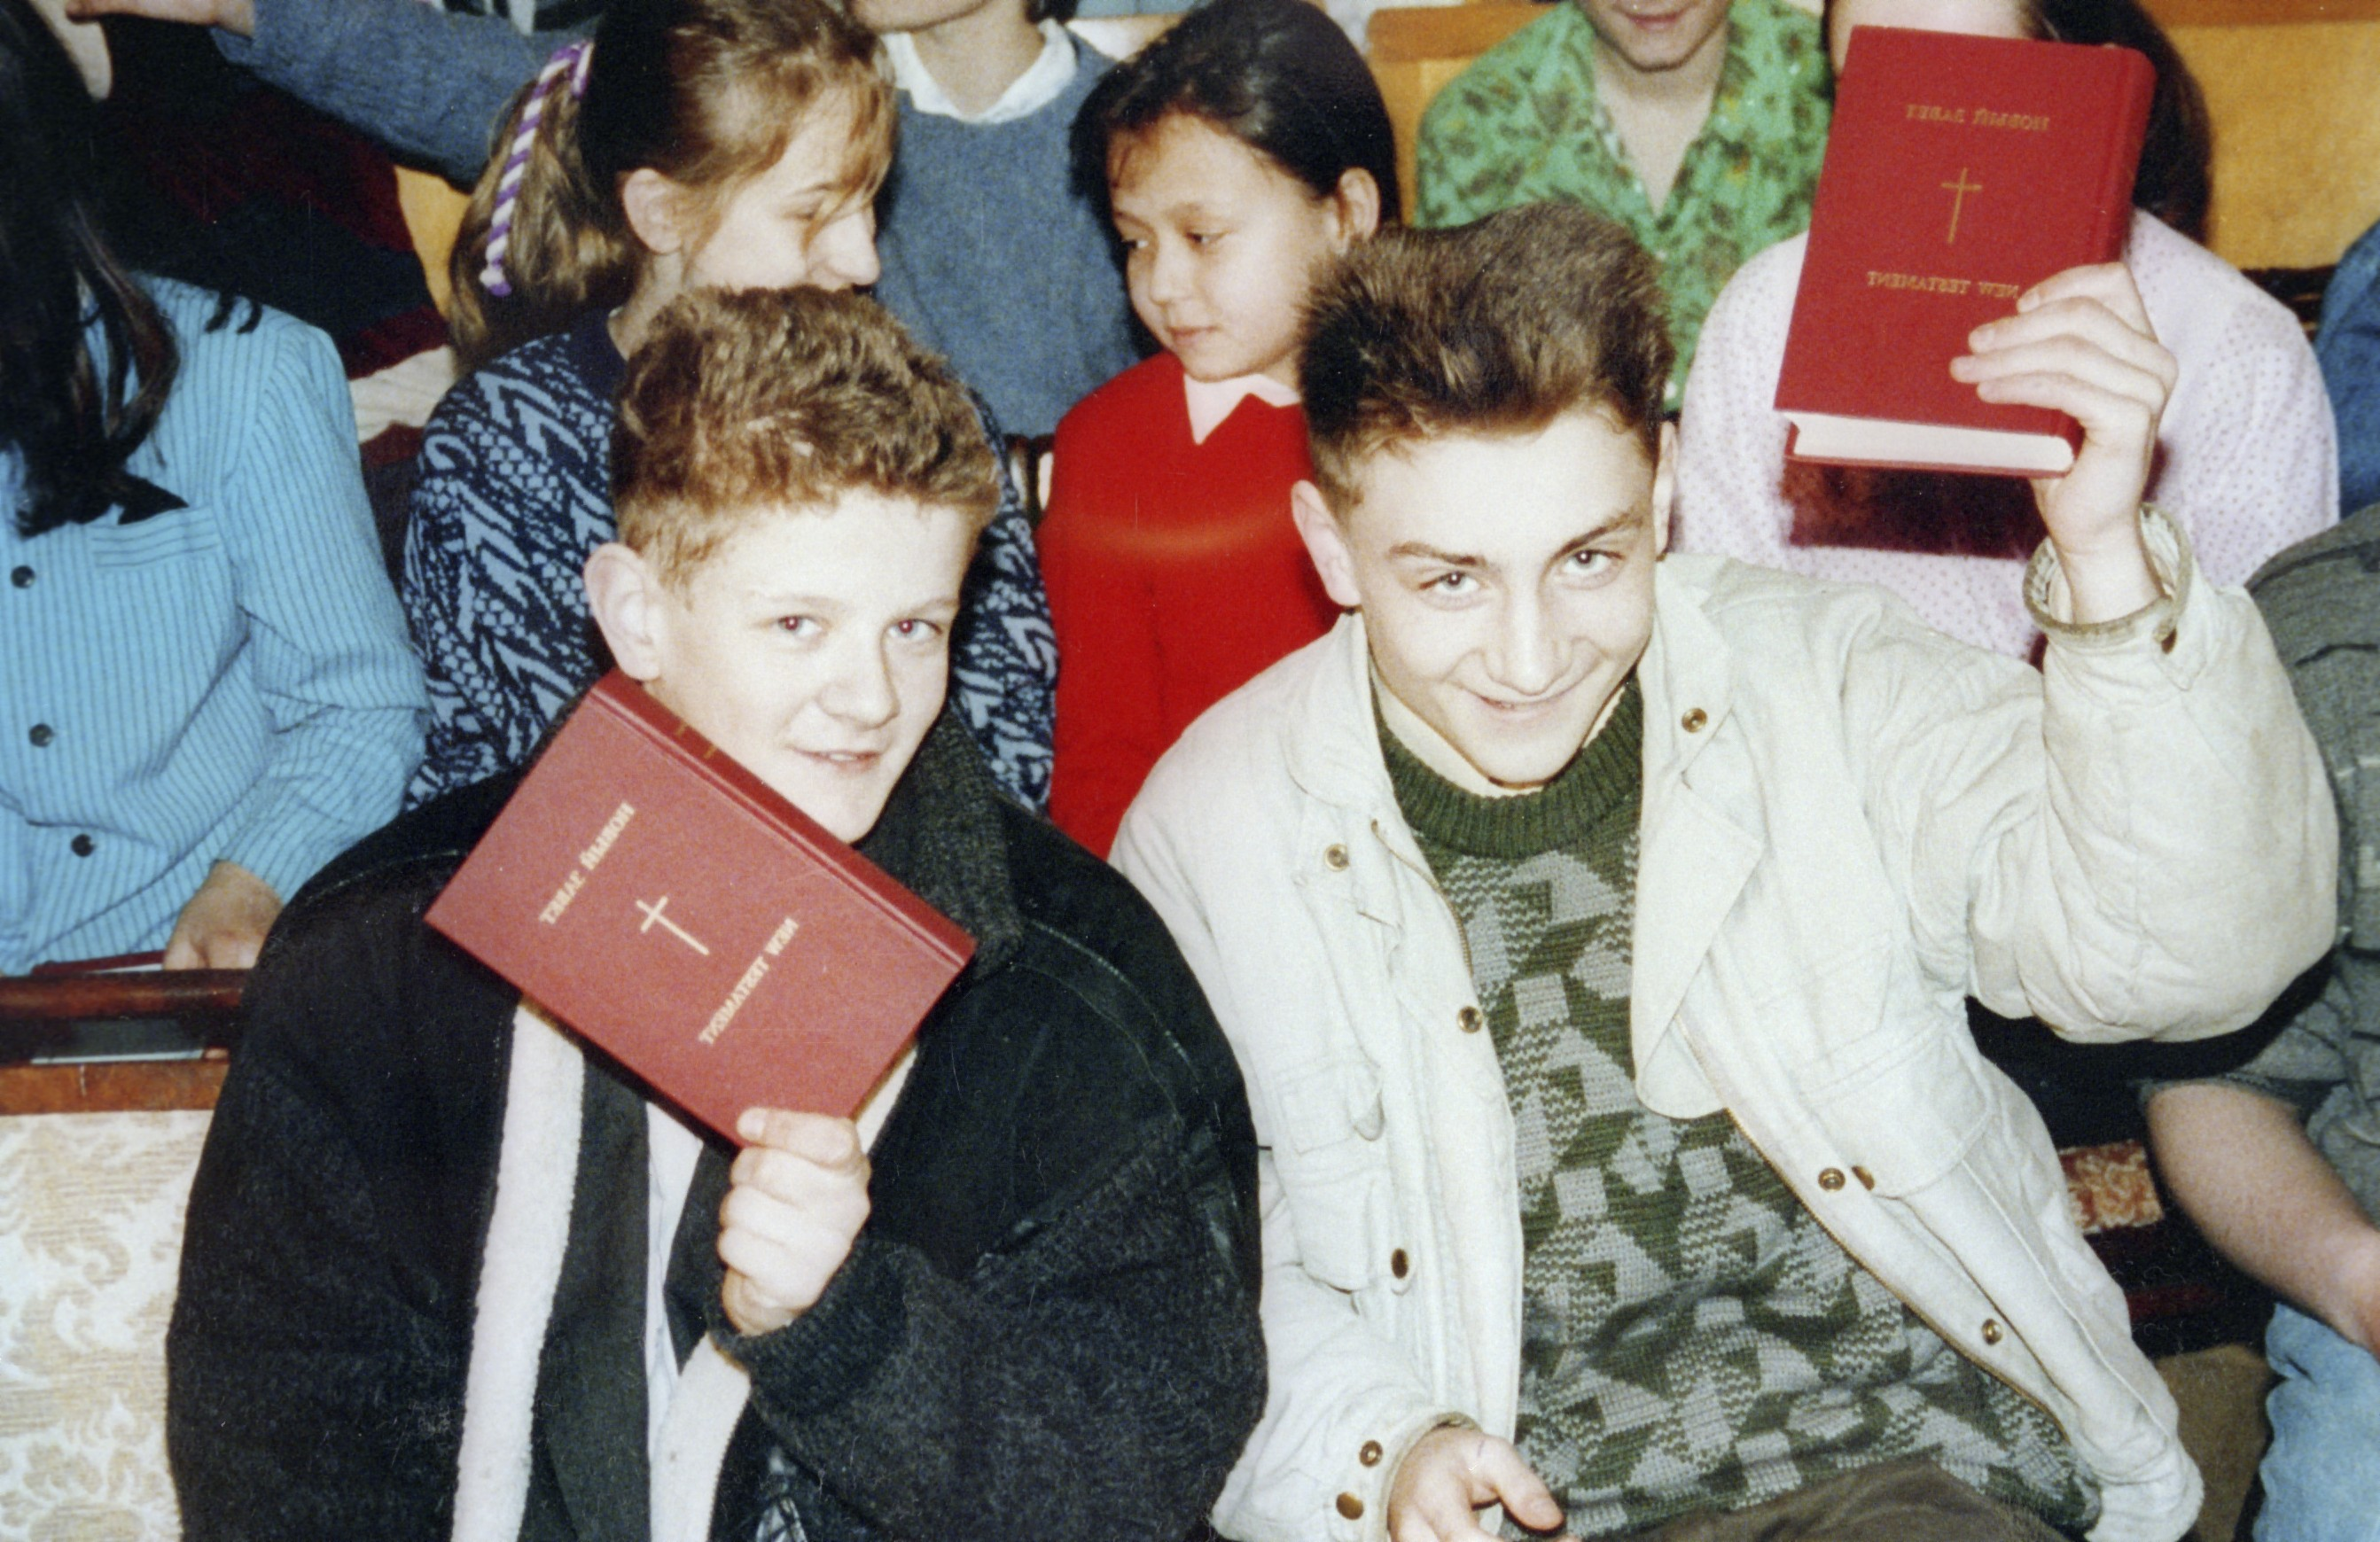 22409 2 Russian boys with Bibles n001